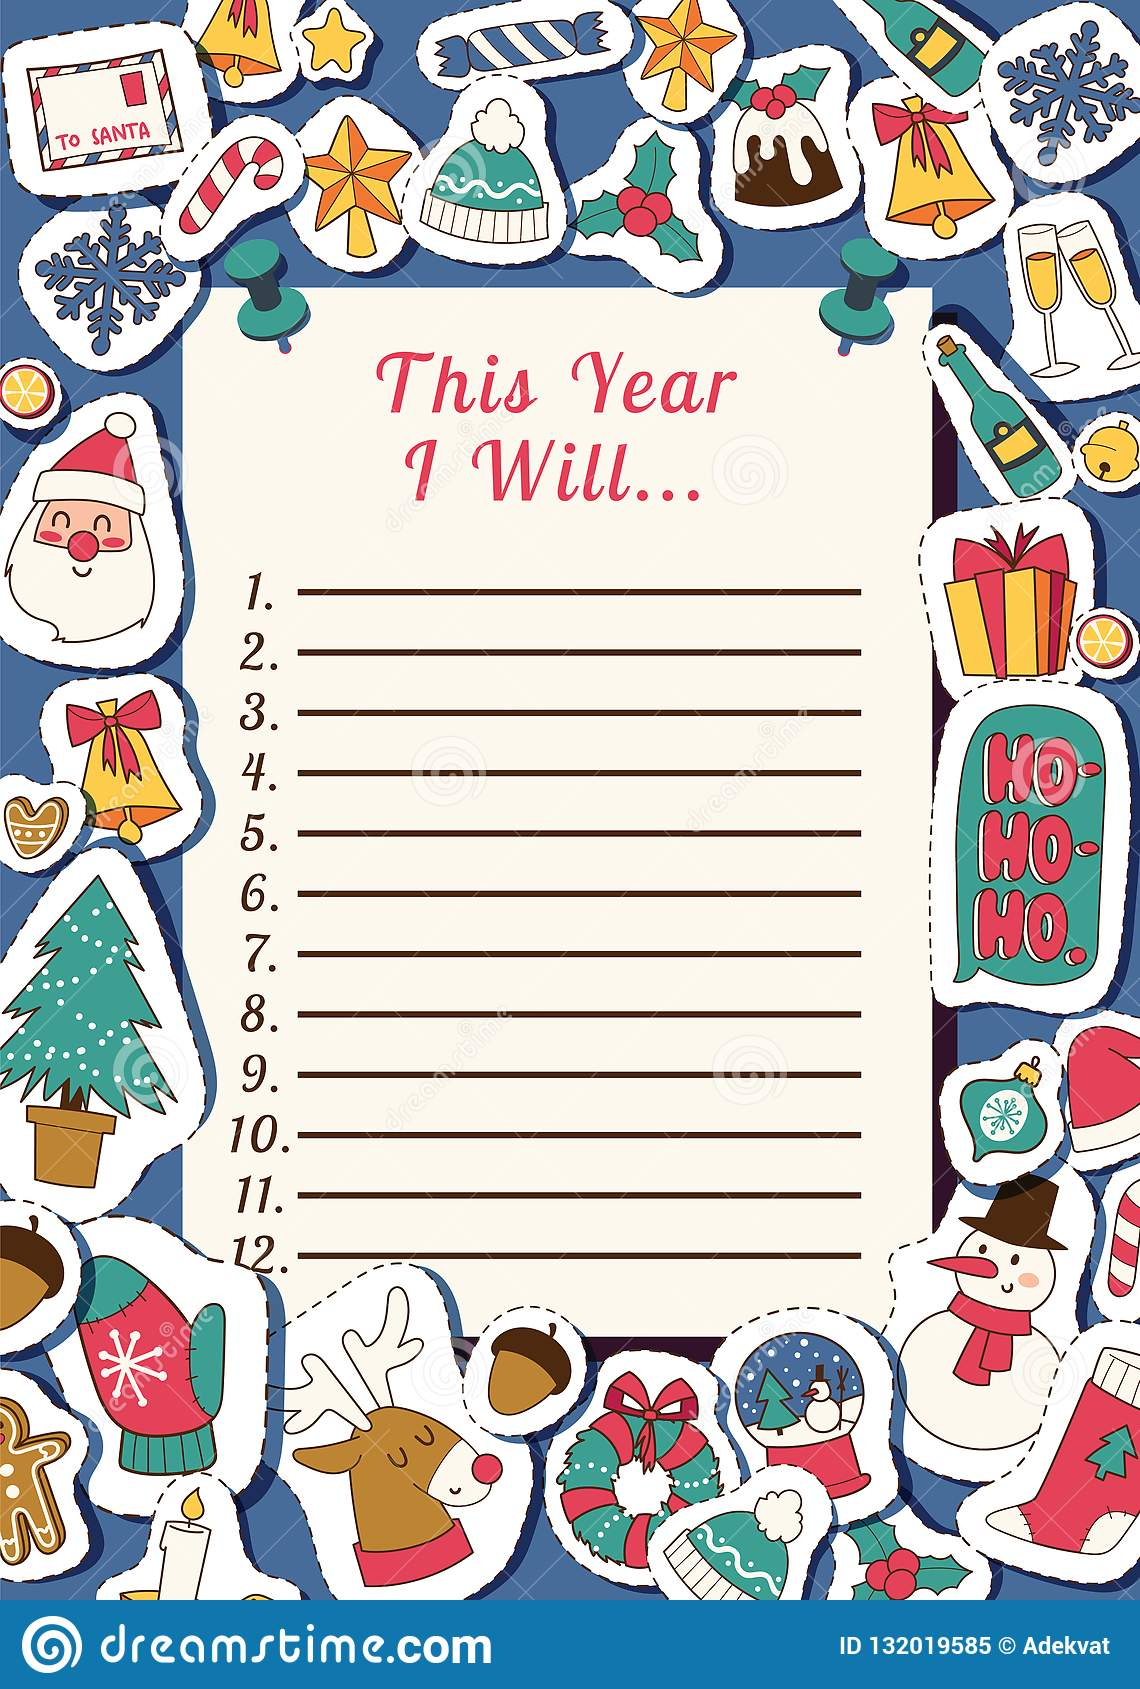 Christmas List 2019.Christmas 2019 Happy New Year Santa Letter Greeting Card